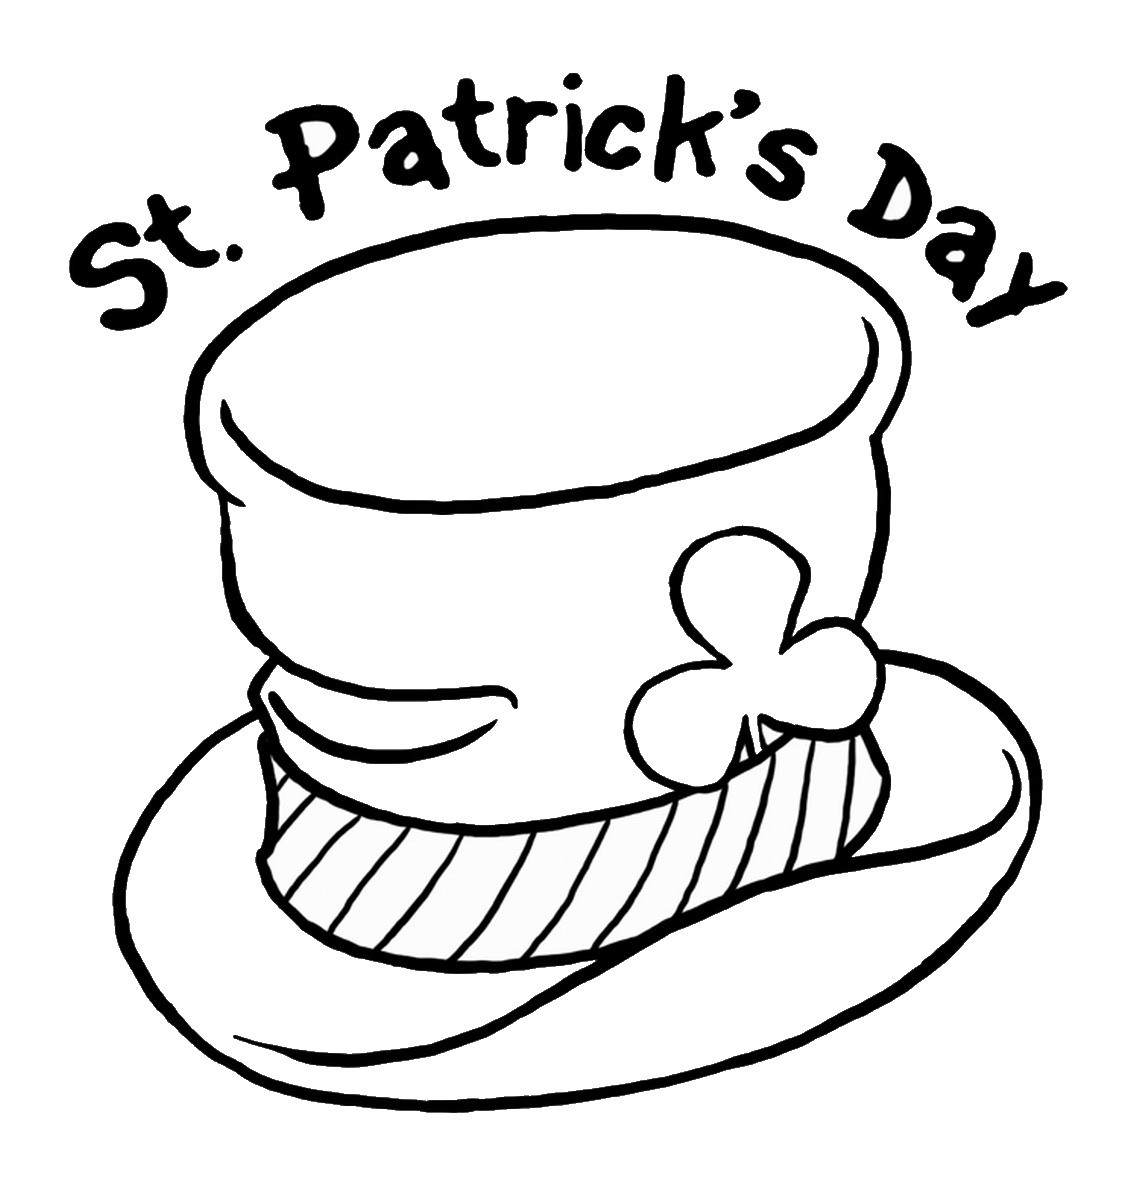 Printable St Patrick Day Coloring Pages  St Patricks Day Coloring Pages Best Coloring Pages For Kids